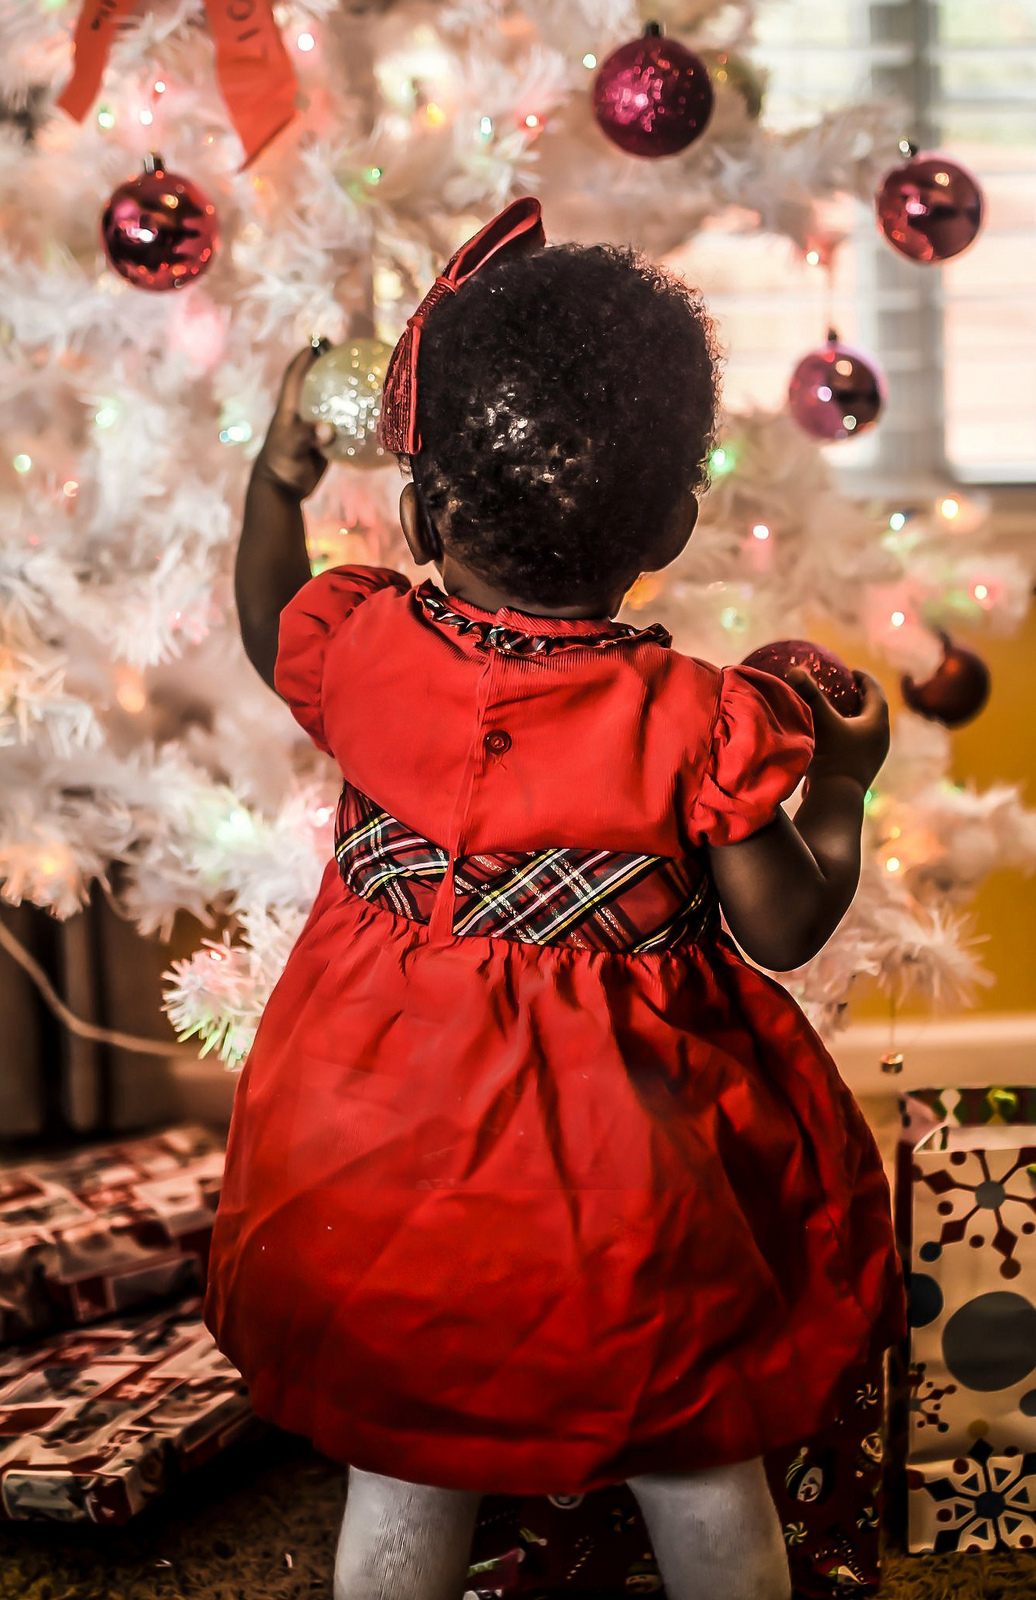 30166096107_9c9383fd26_h Black Southern Belle Baby Holiday Photos We Love